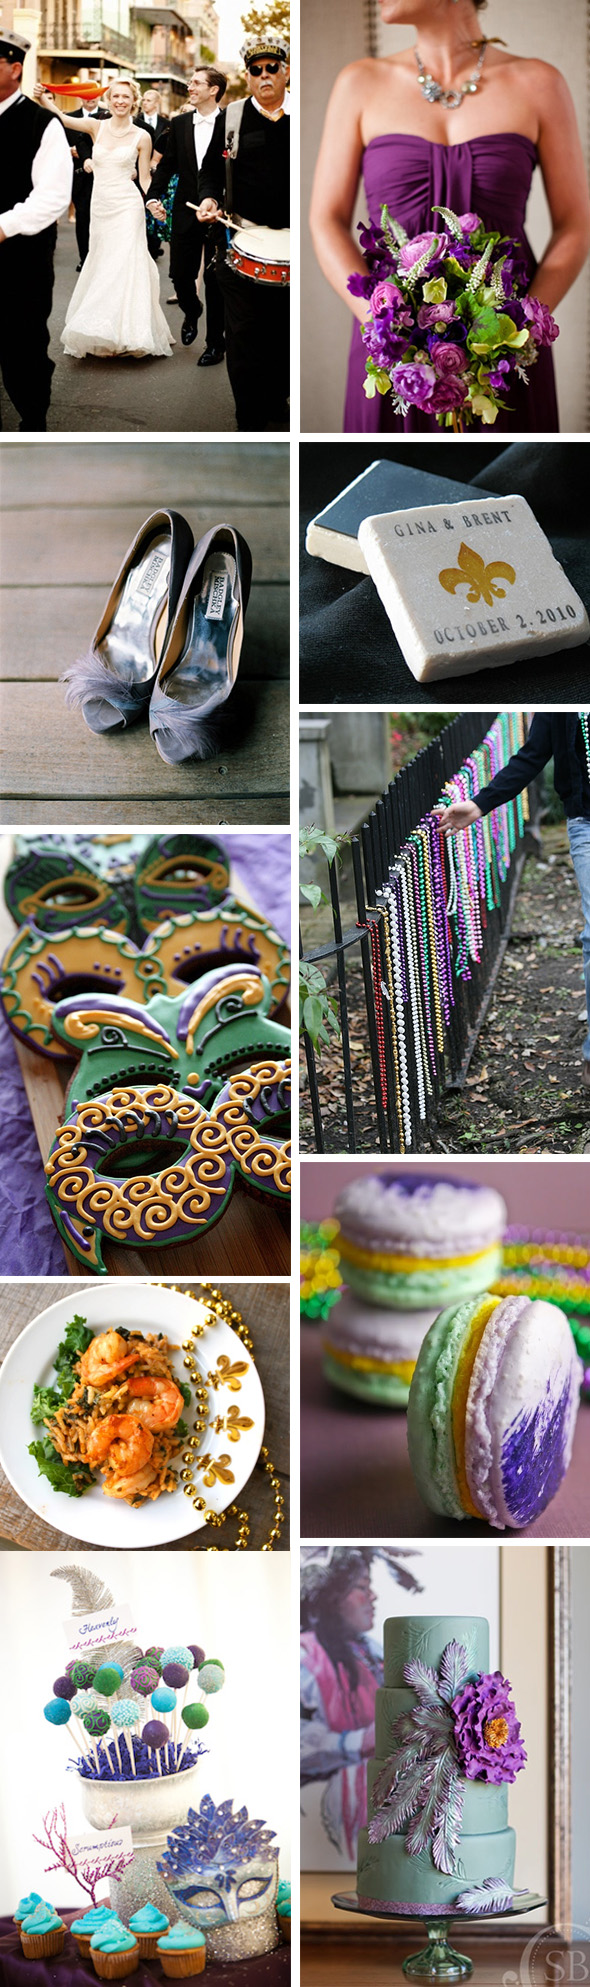 mardi gras wedding ideas Mardi Gras Themed Weddings